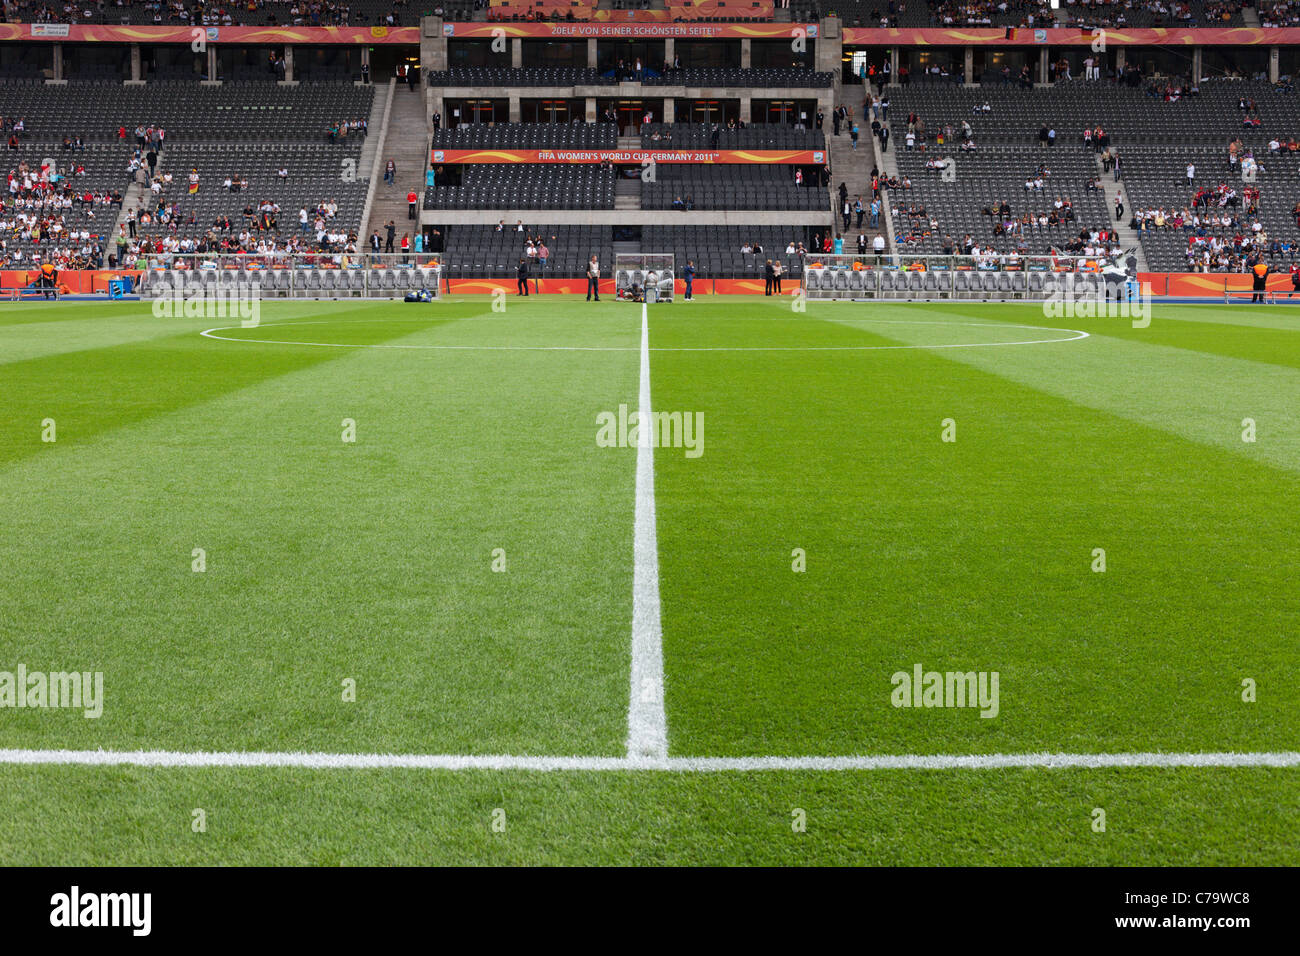 Football pitch at Olympic Stadium in Berlin, Germany ahead of the opening match of the 2011 Women's World Cup - Stock Image